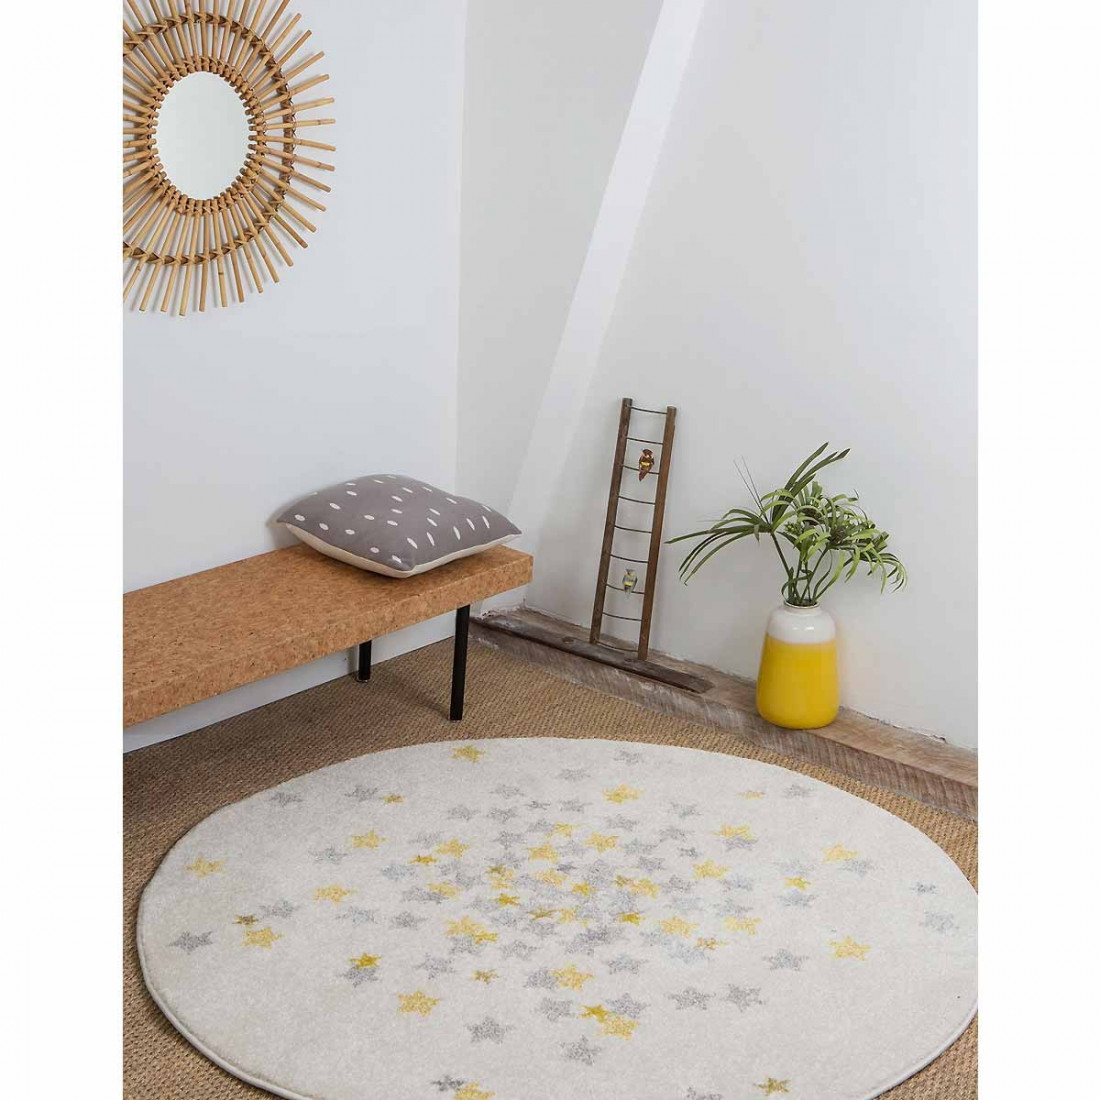 tapis enfant rond blanc etoiles jaune grise 120 cm ma chambramoi. Black Bedroom Furniture Sets. Home Design Ideas